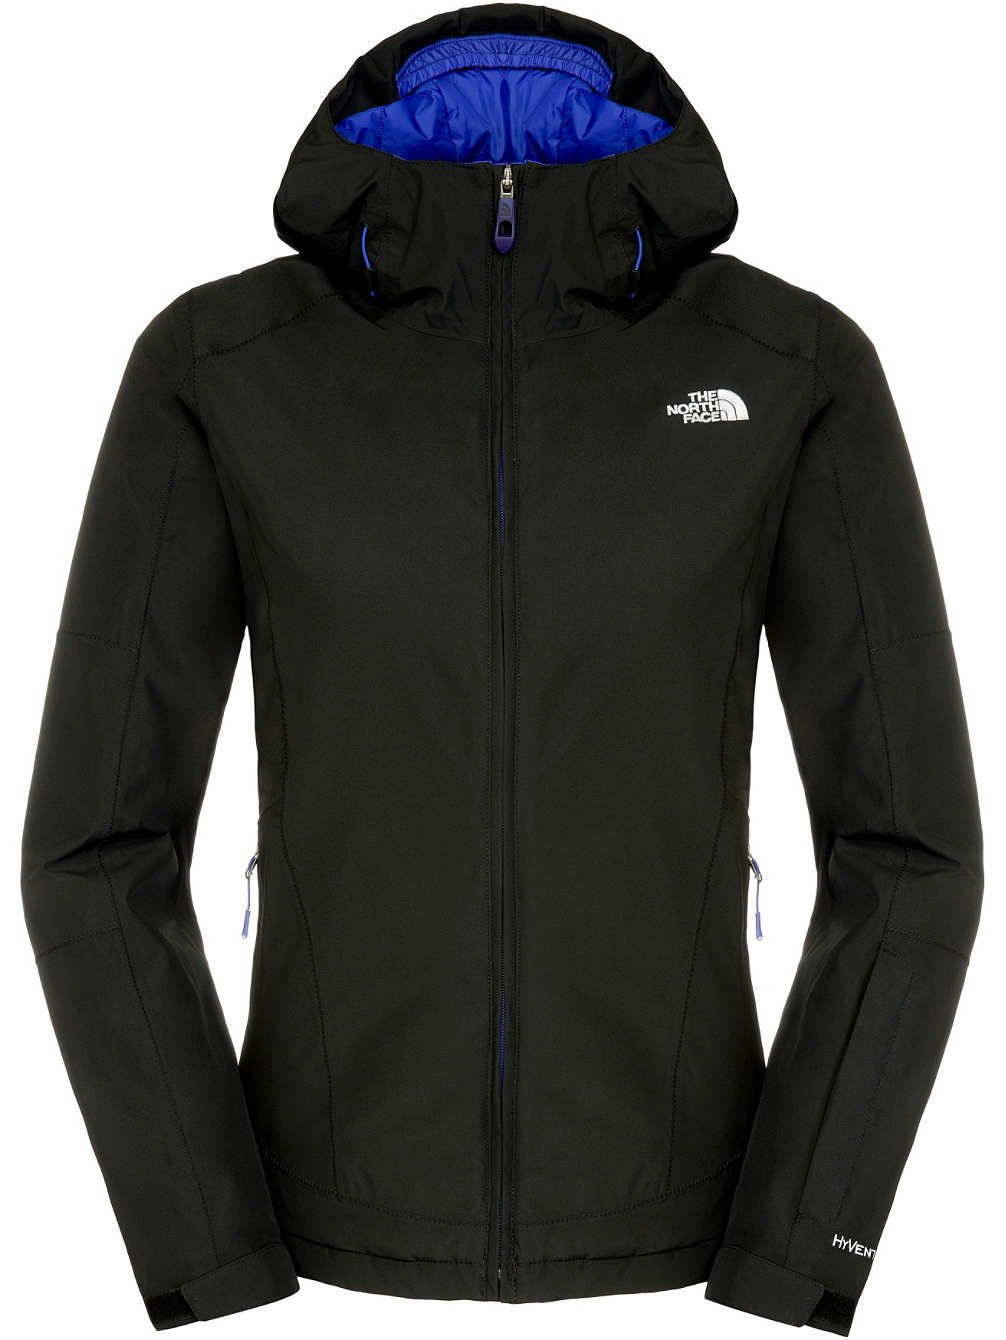 Damen Snowboard Jacke The North Face Baldensis Jacket günstig